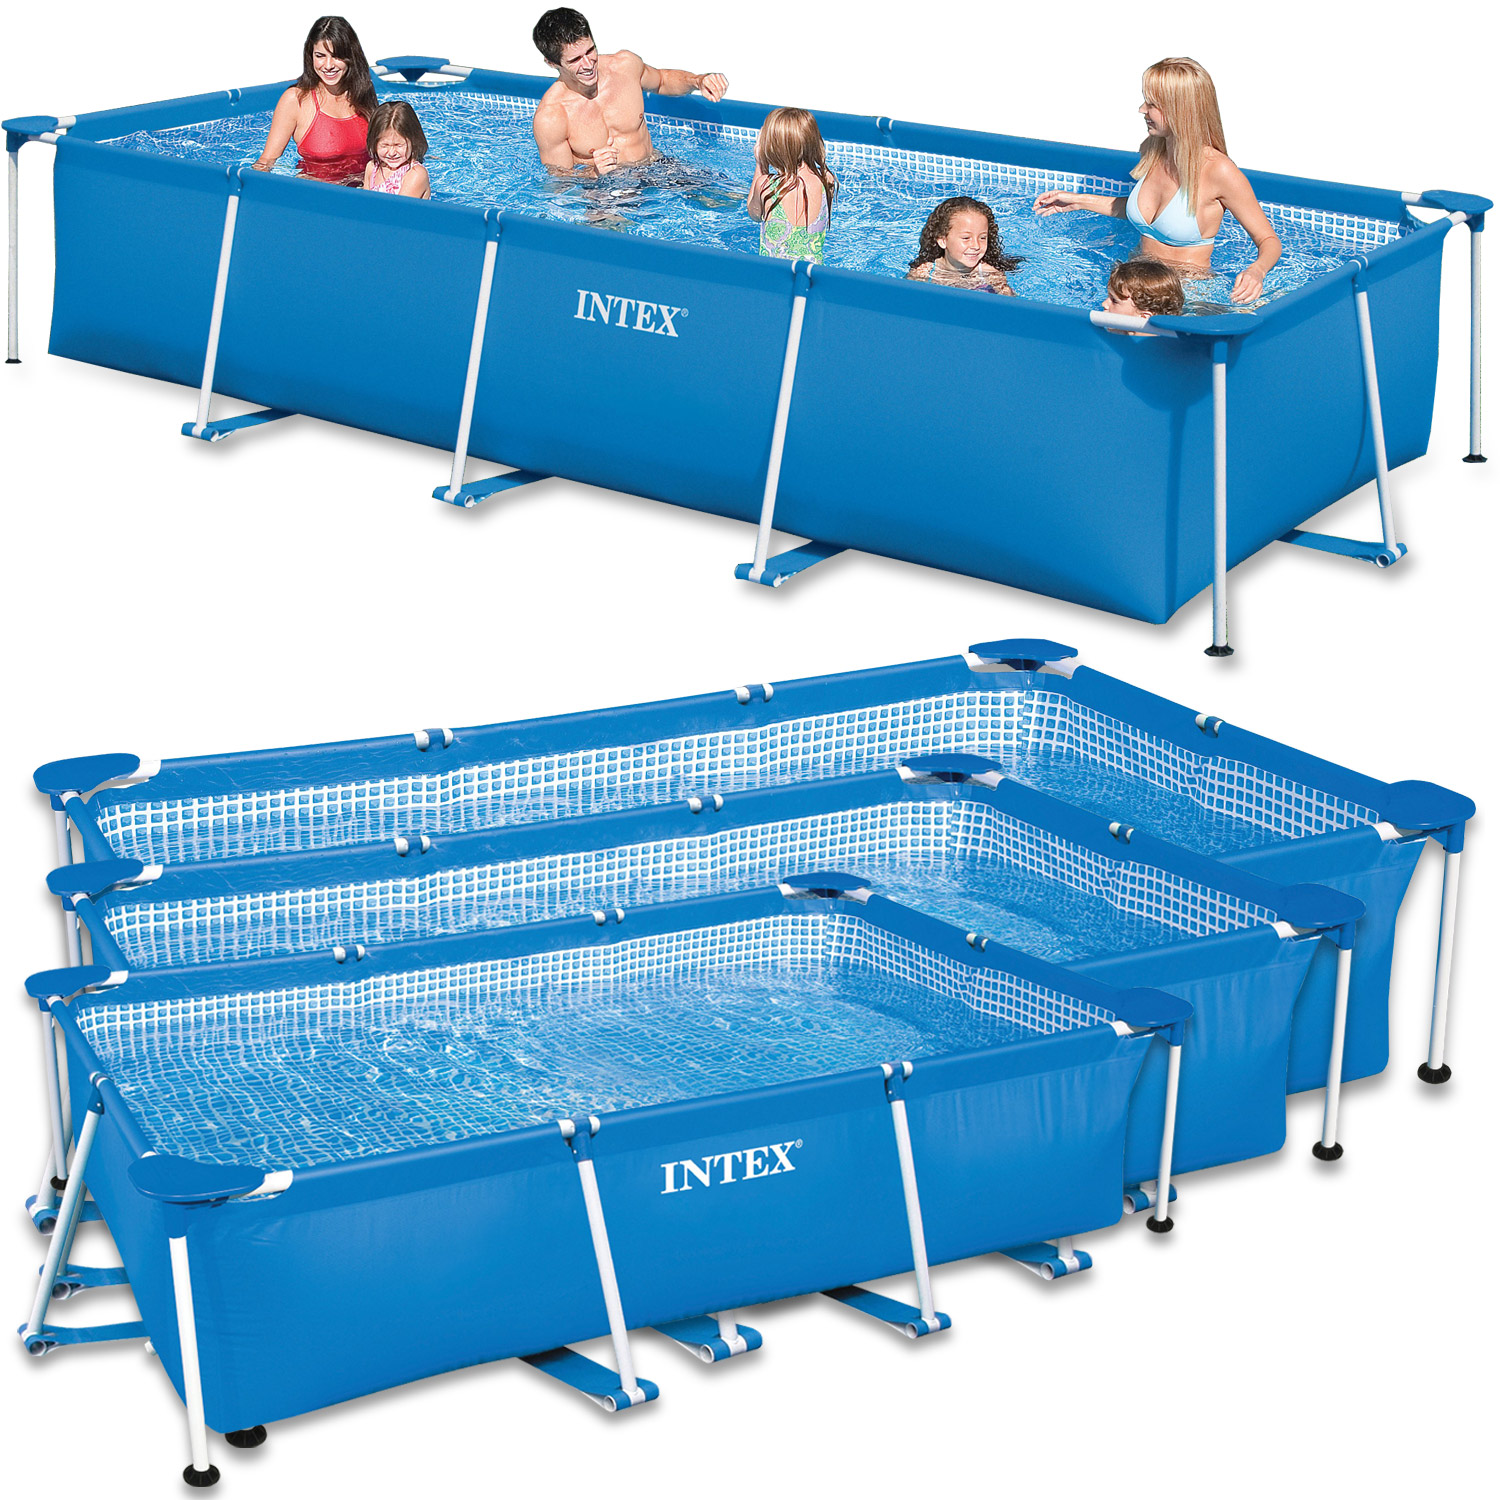 Intex family swimming pool rectangular frame ebay for Intex rectangular swimming pool